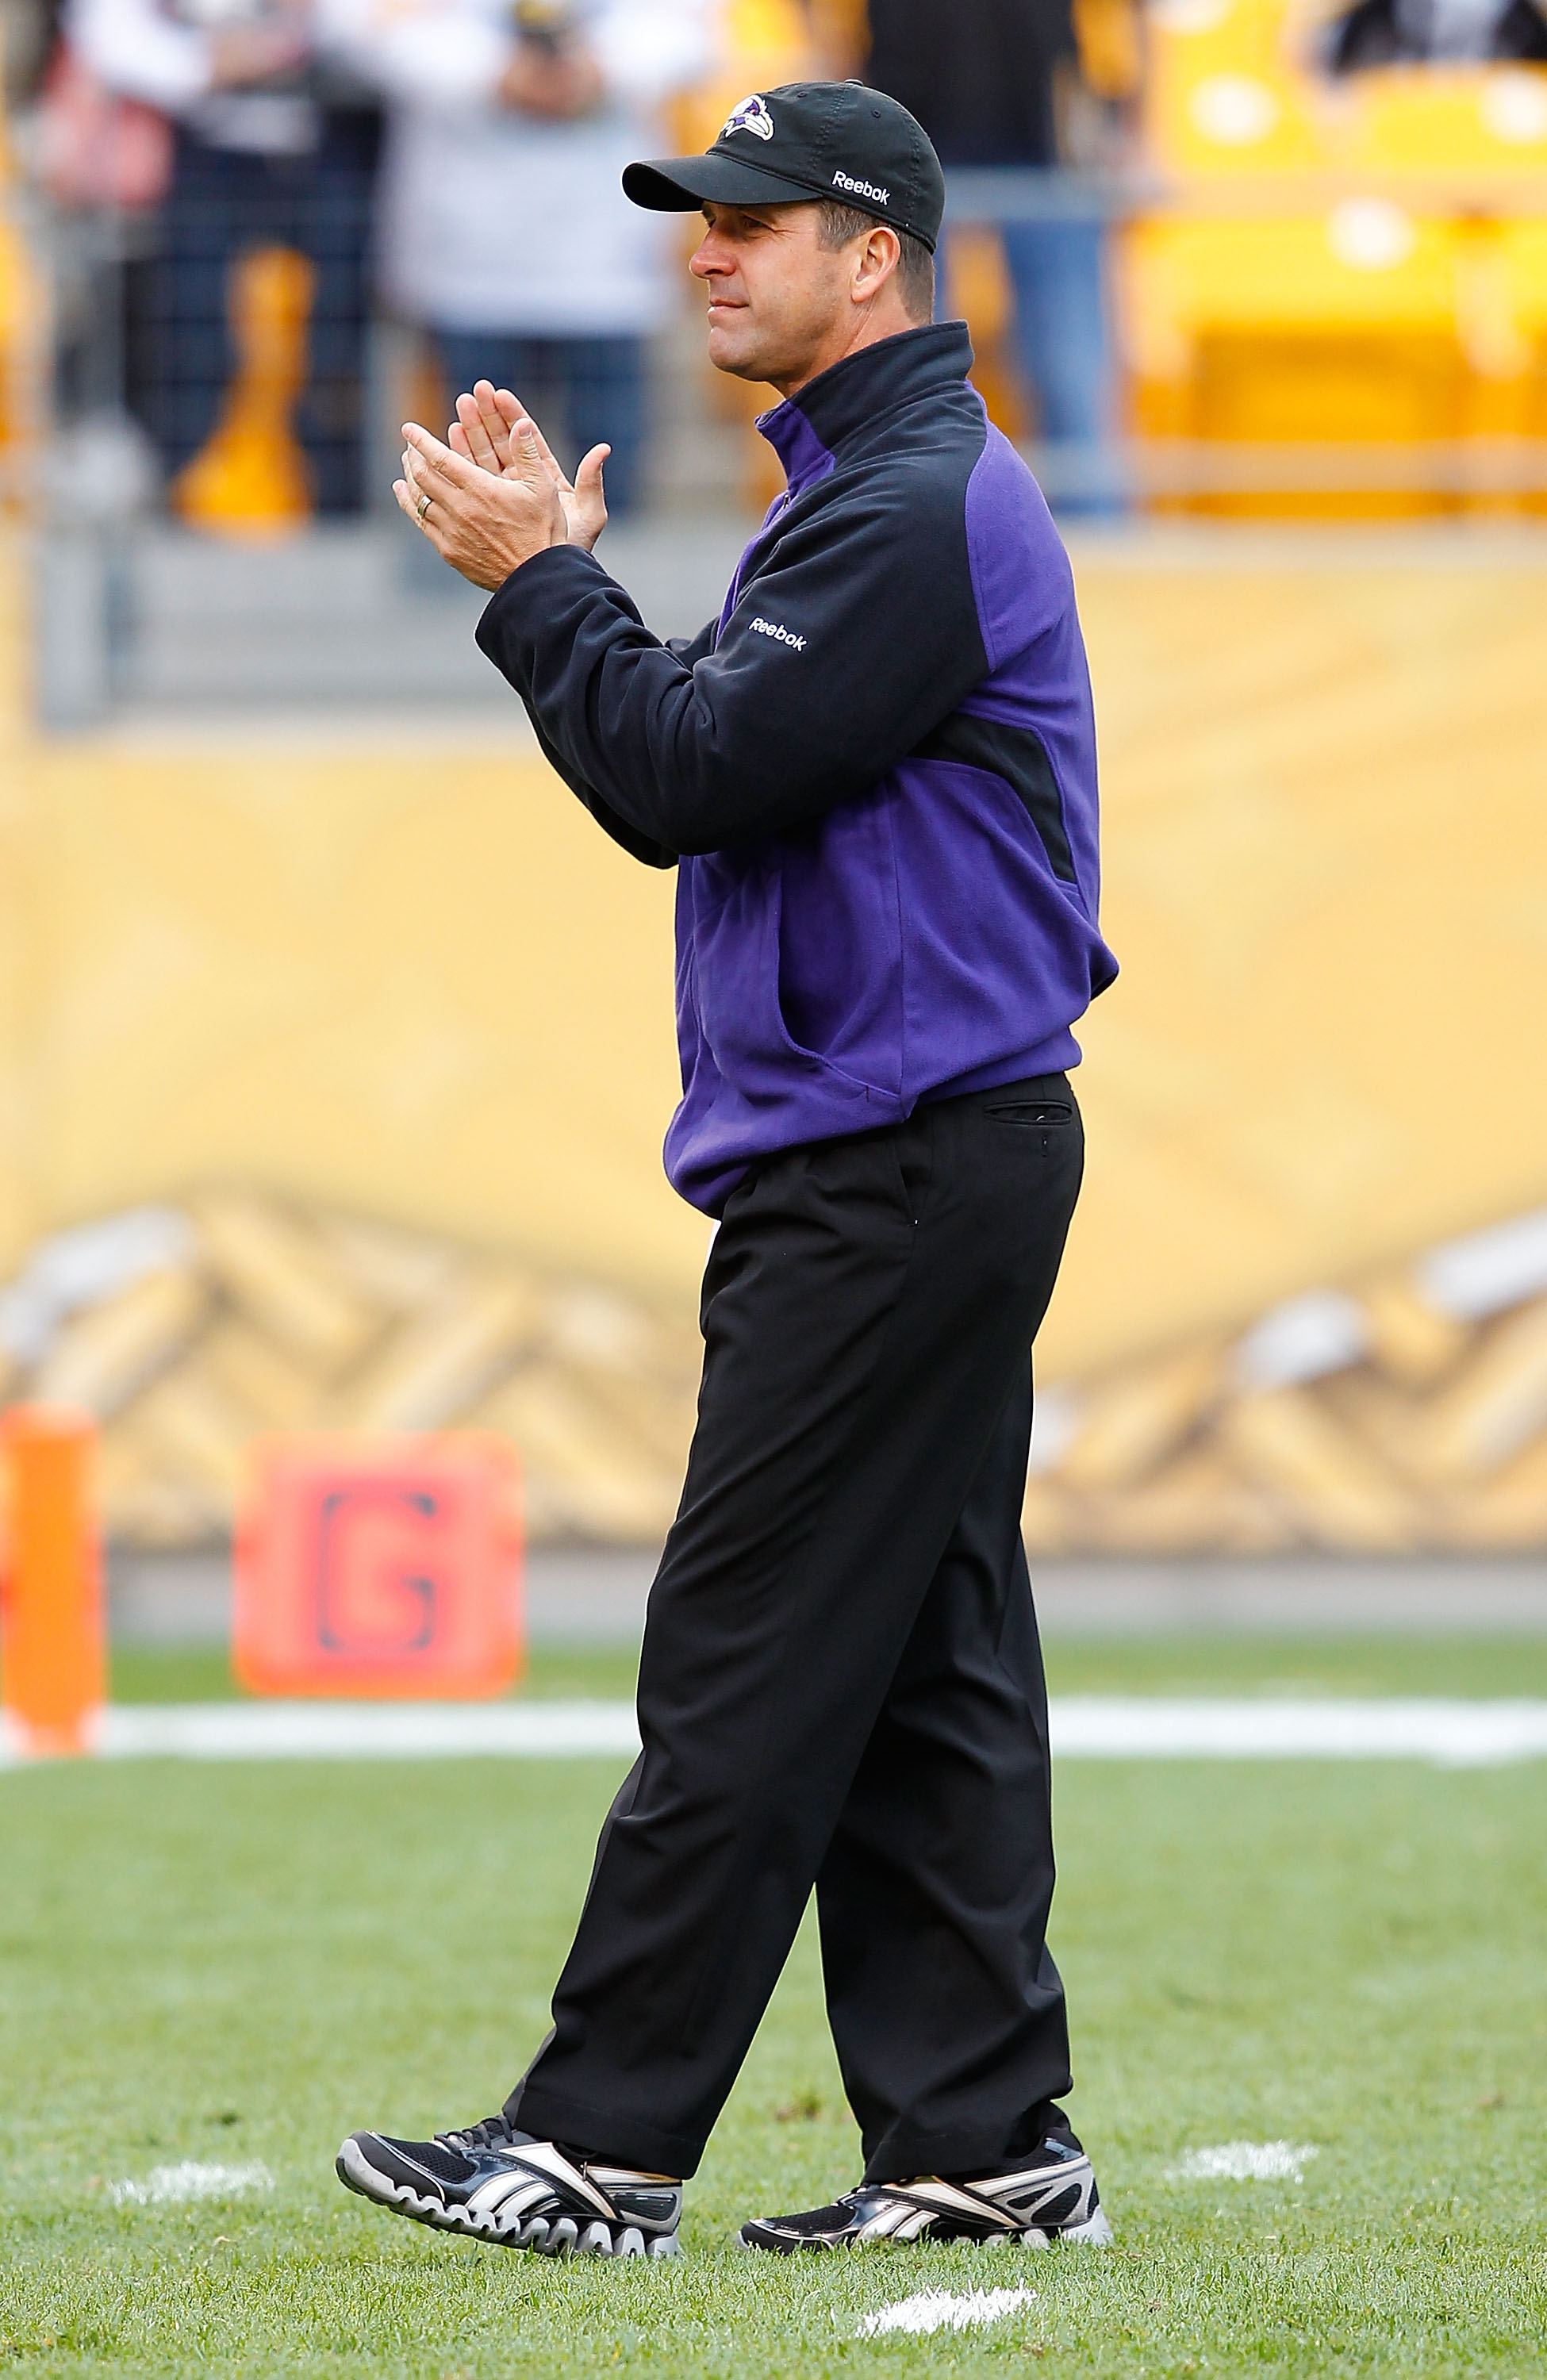 PITTSBURGH - OCTOBER 03:  Head coach John Harbaugh of the Baltimore Ravens watches his team practice prior to the game against the Pittsburgh Steelers on October 3, 2010 at Heinz Field in Pittsburgh, Pennsylvania.  (Photo by Jared Wickerham/Getty Images)